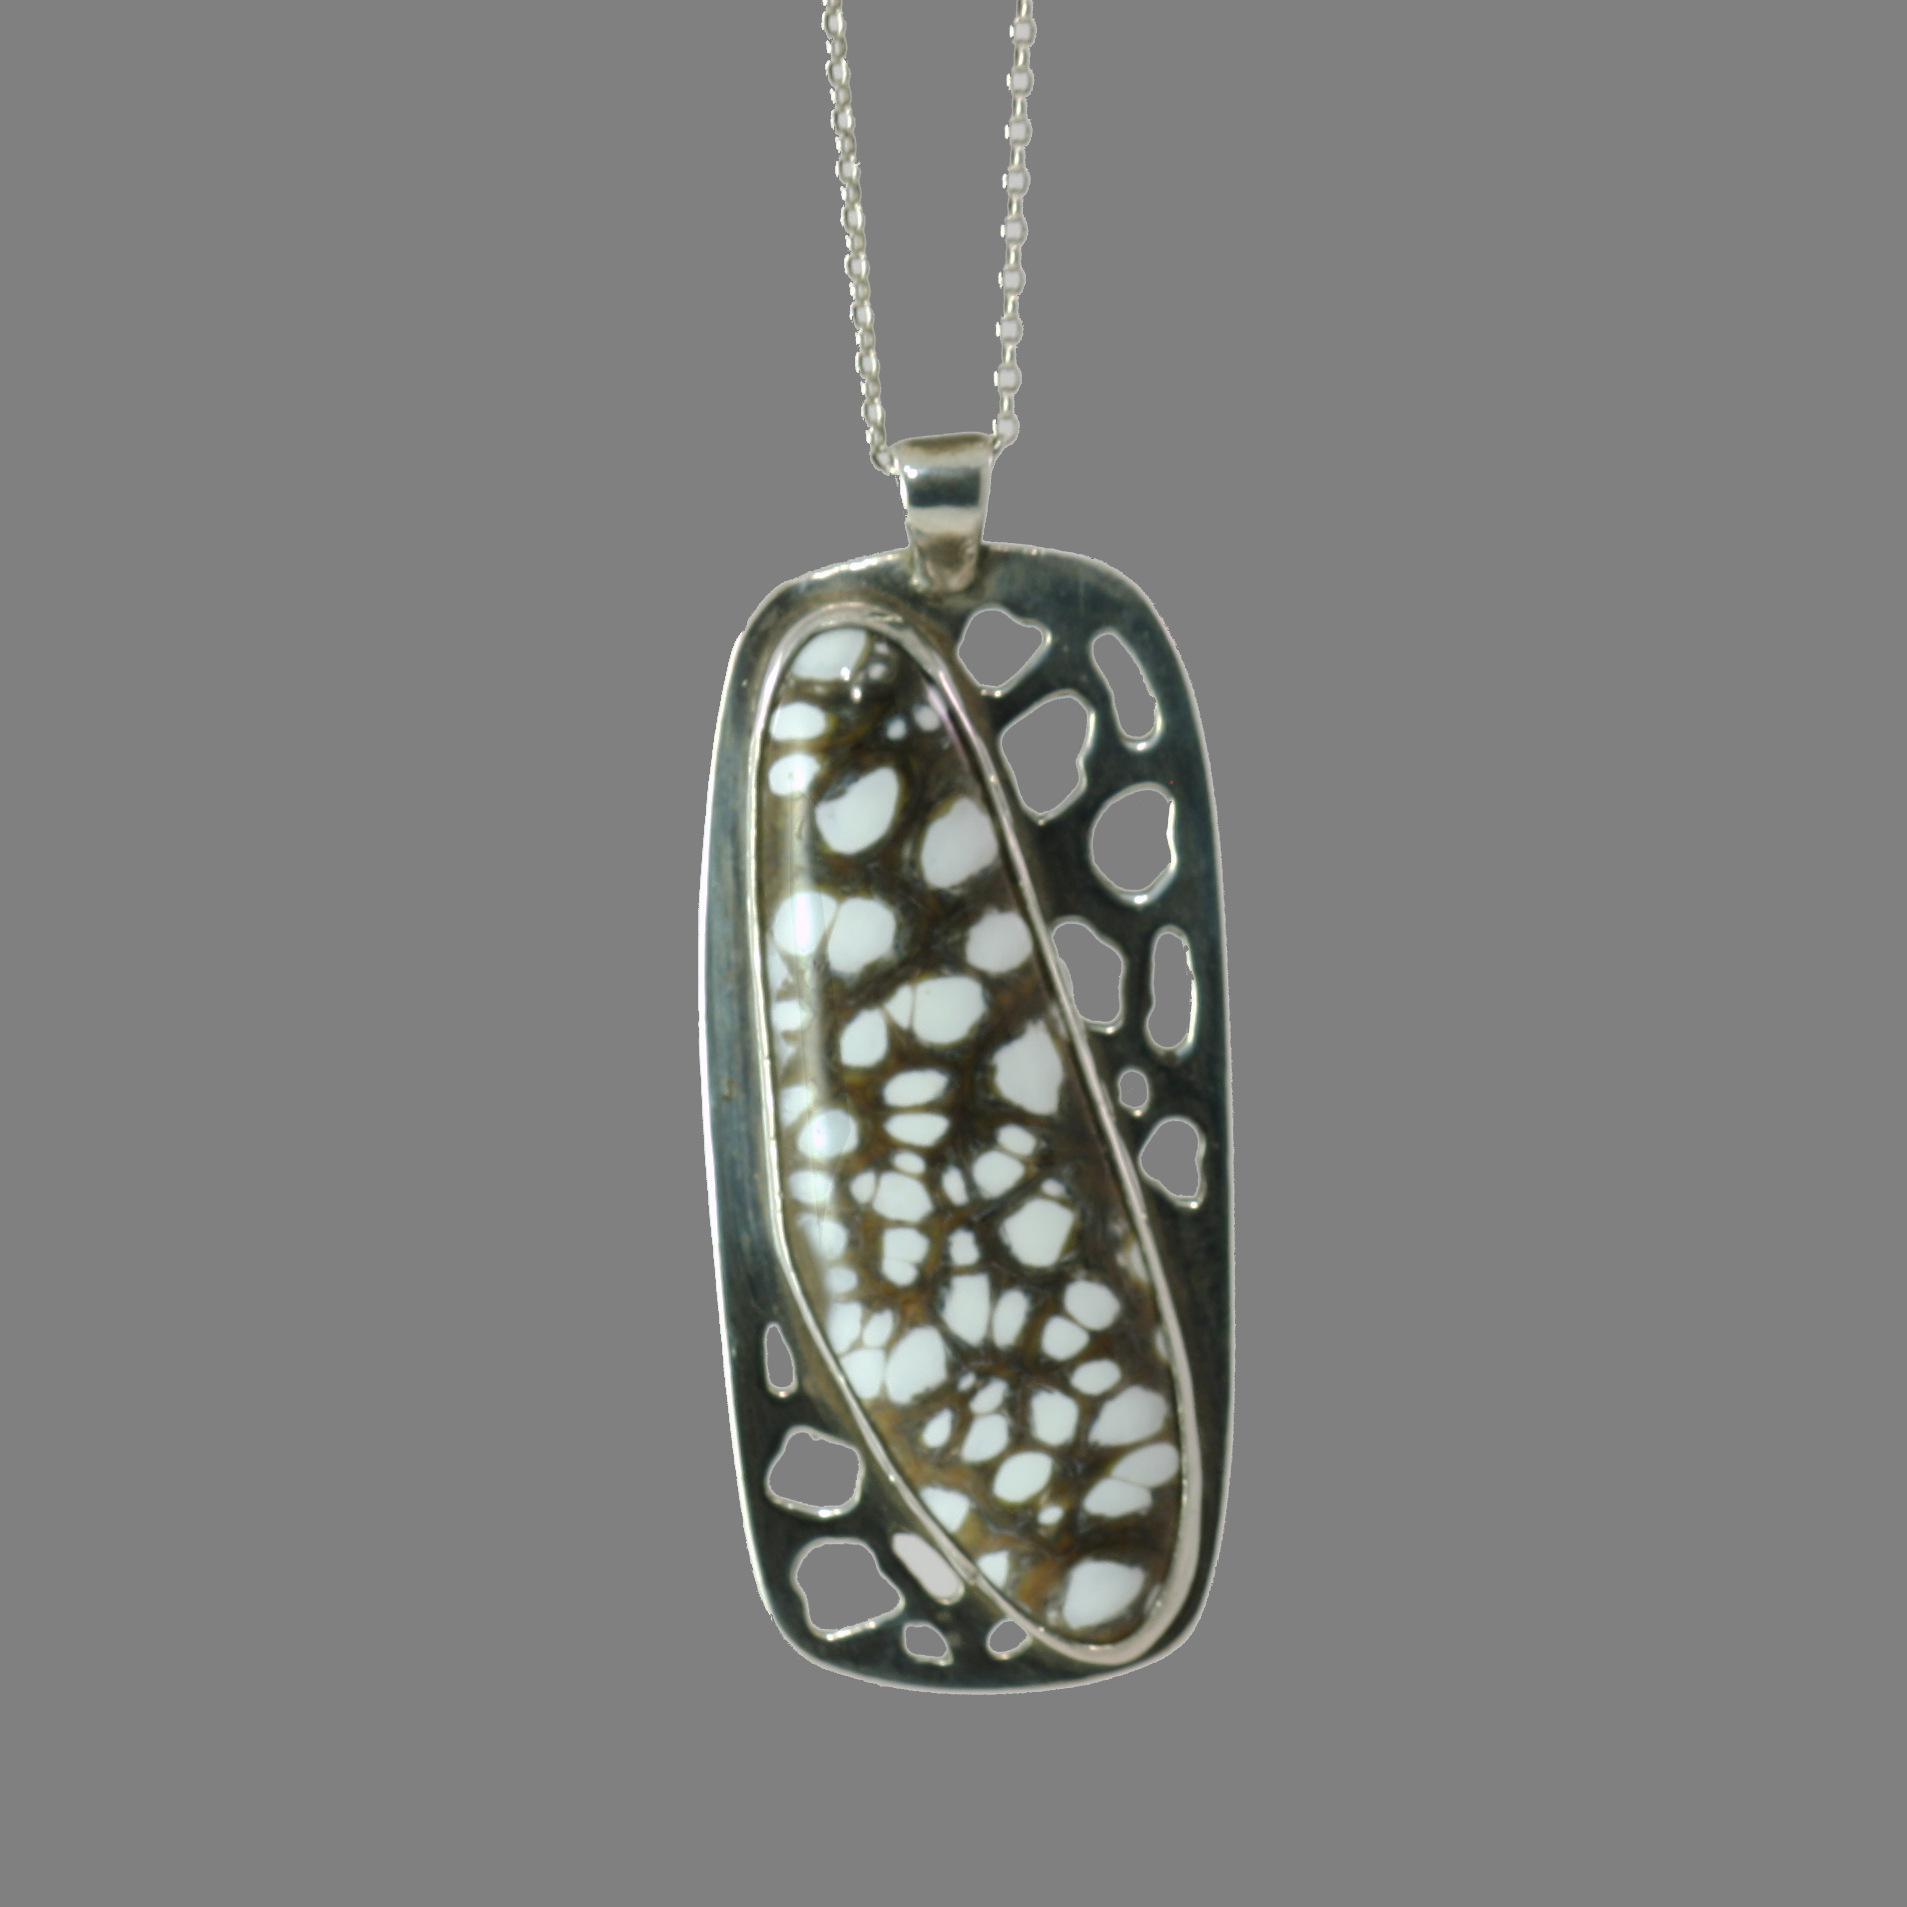 Cutout Pendant with Art Glass